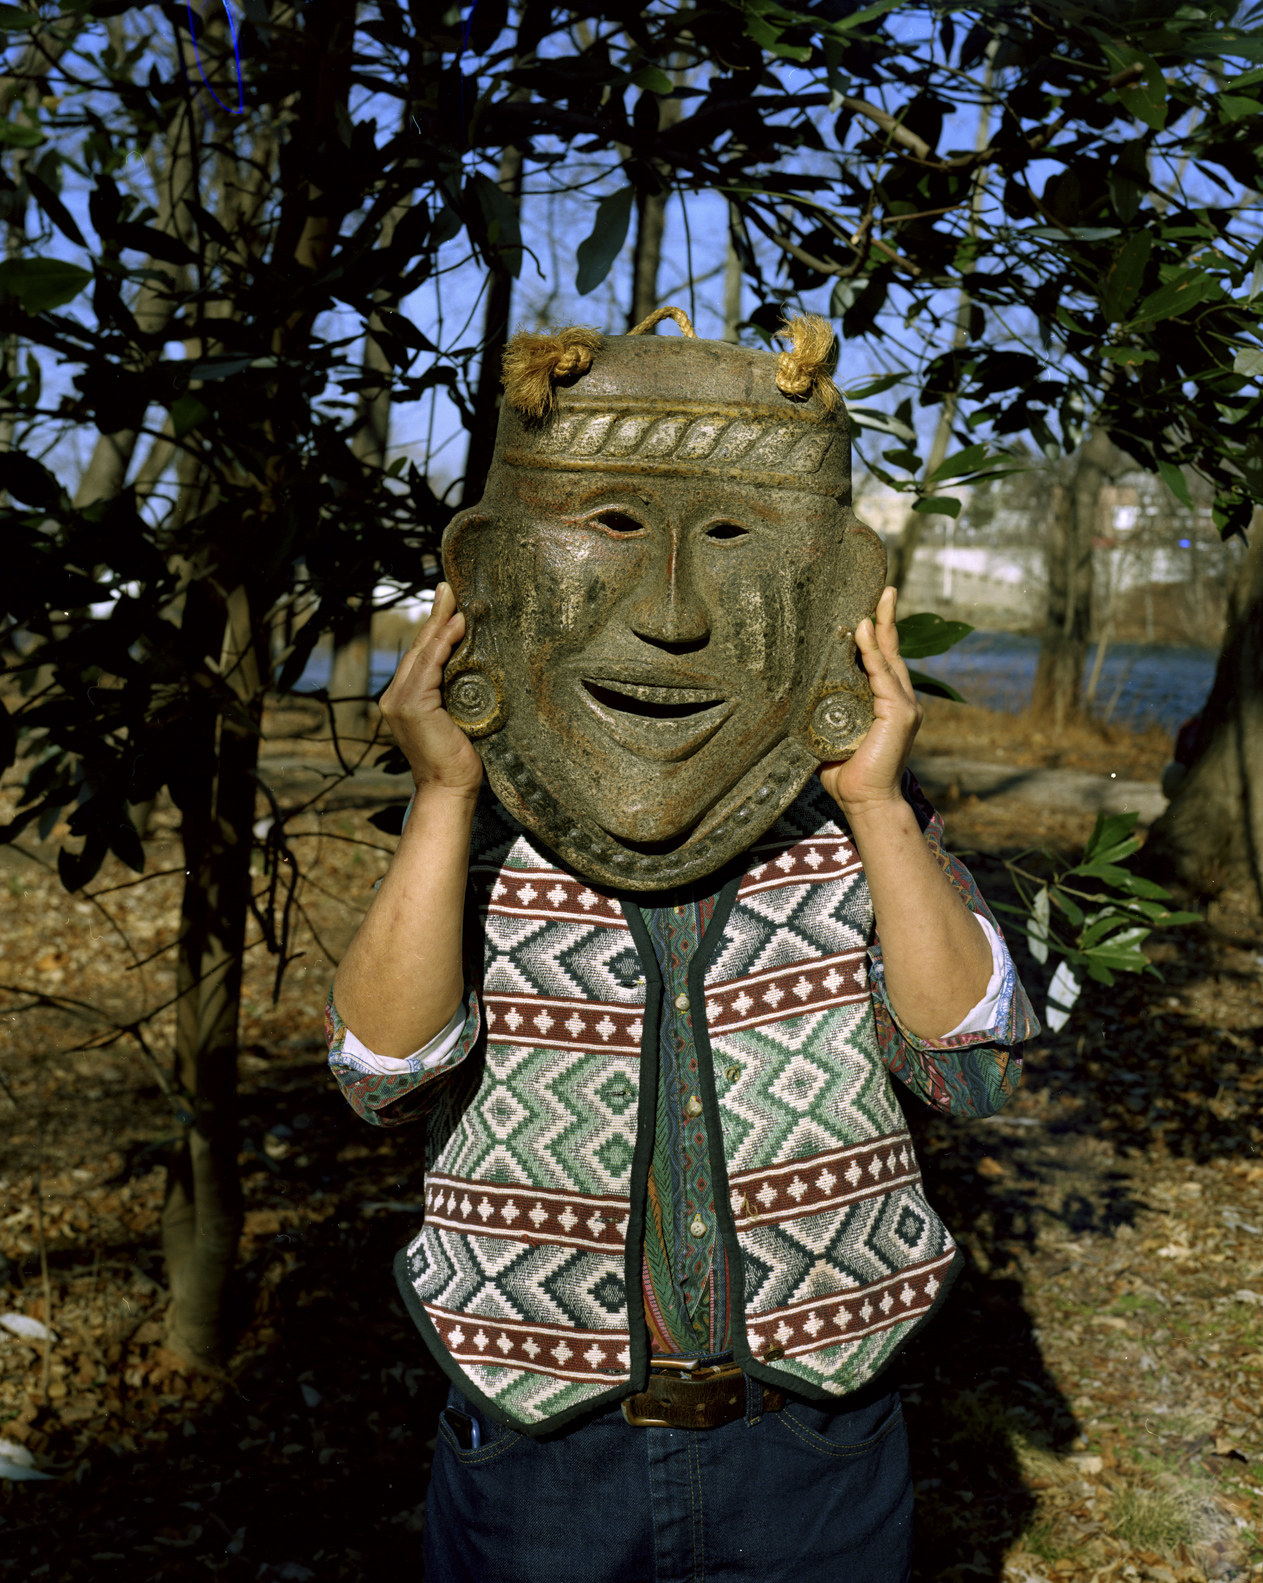 A man holding up a large replica of an Indigenous clay mask to this face